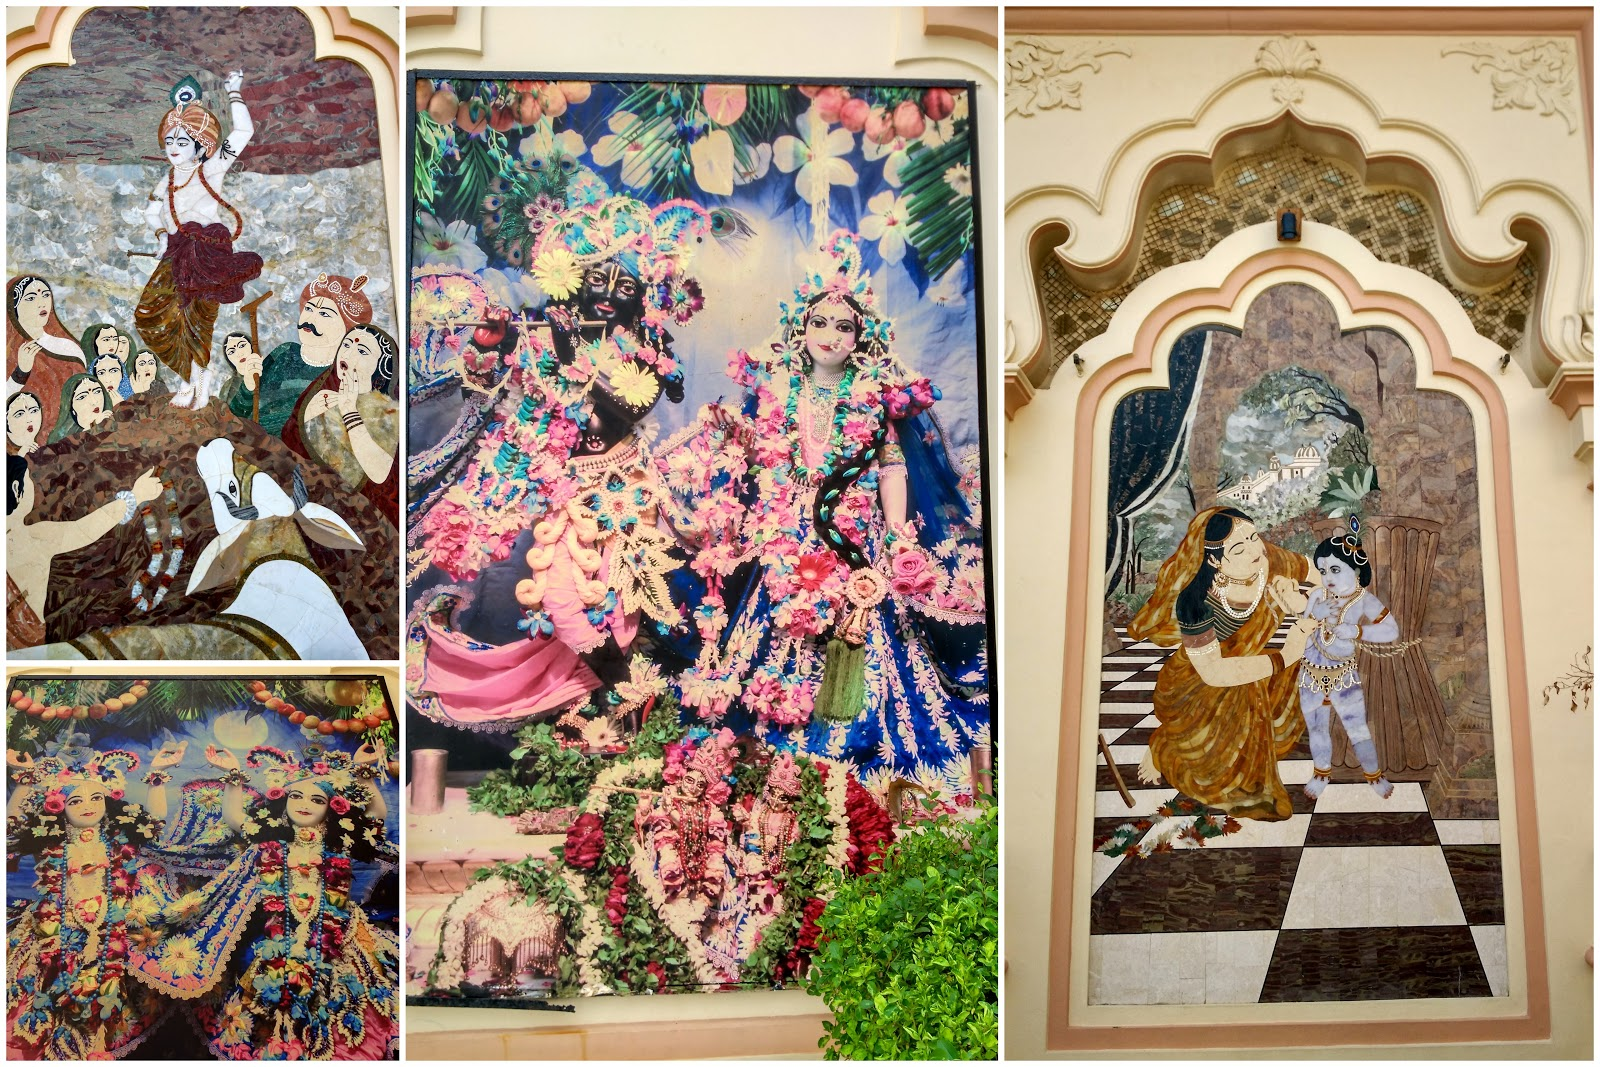 ISKCON Temple lord krishna paintings, Vrindavan, Uttar Pradesh